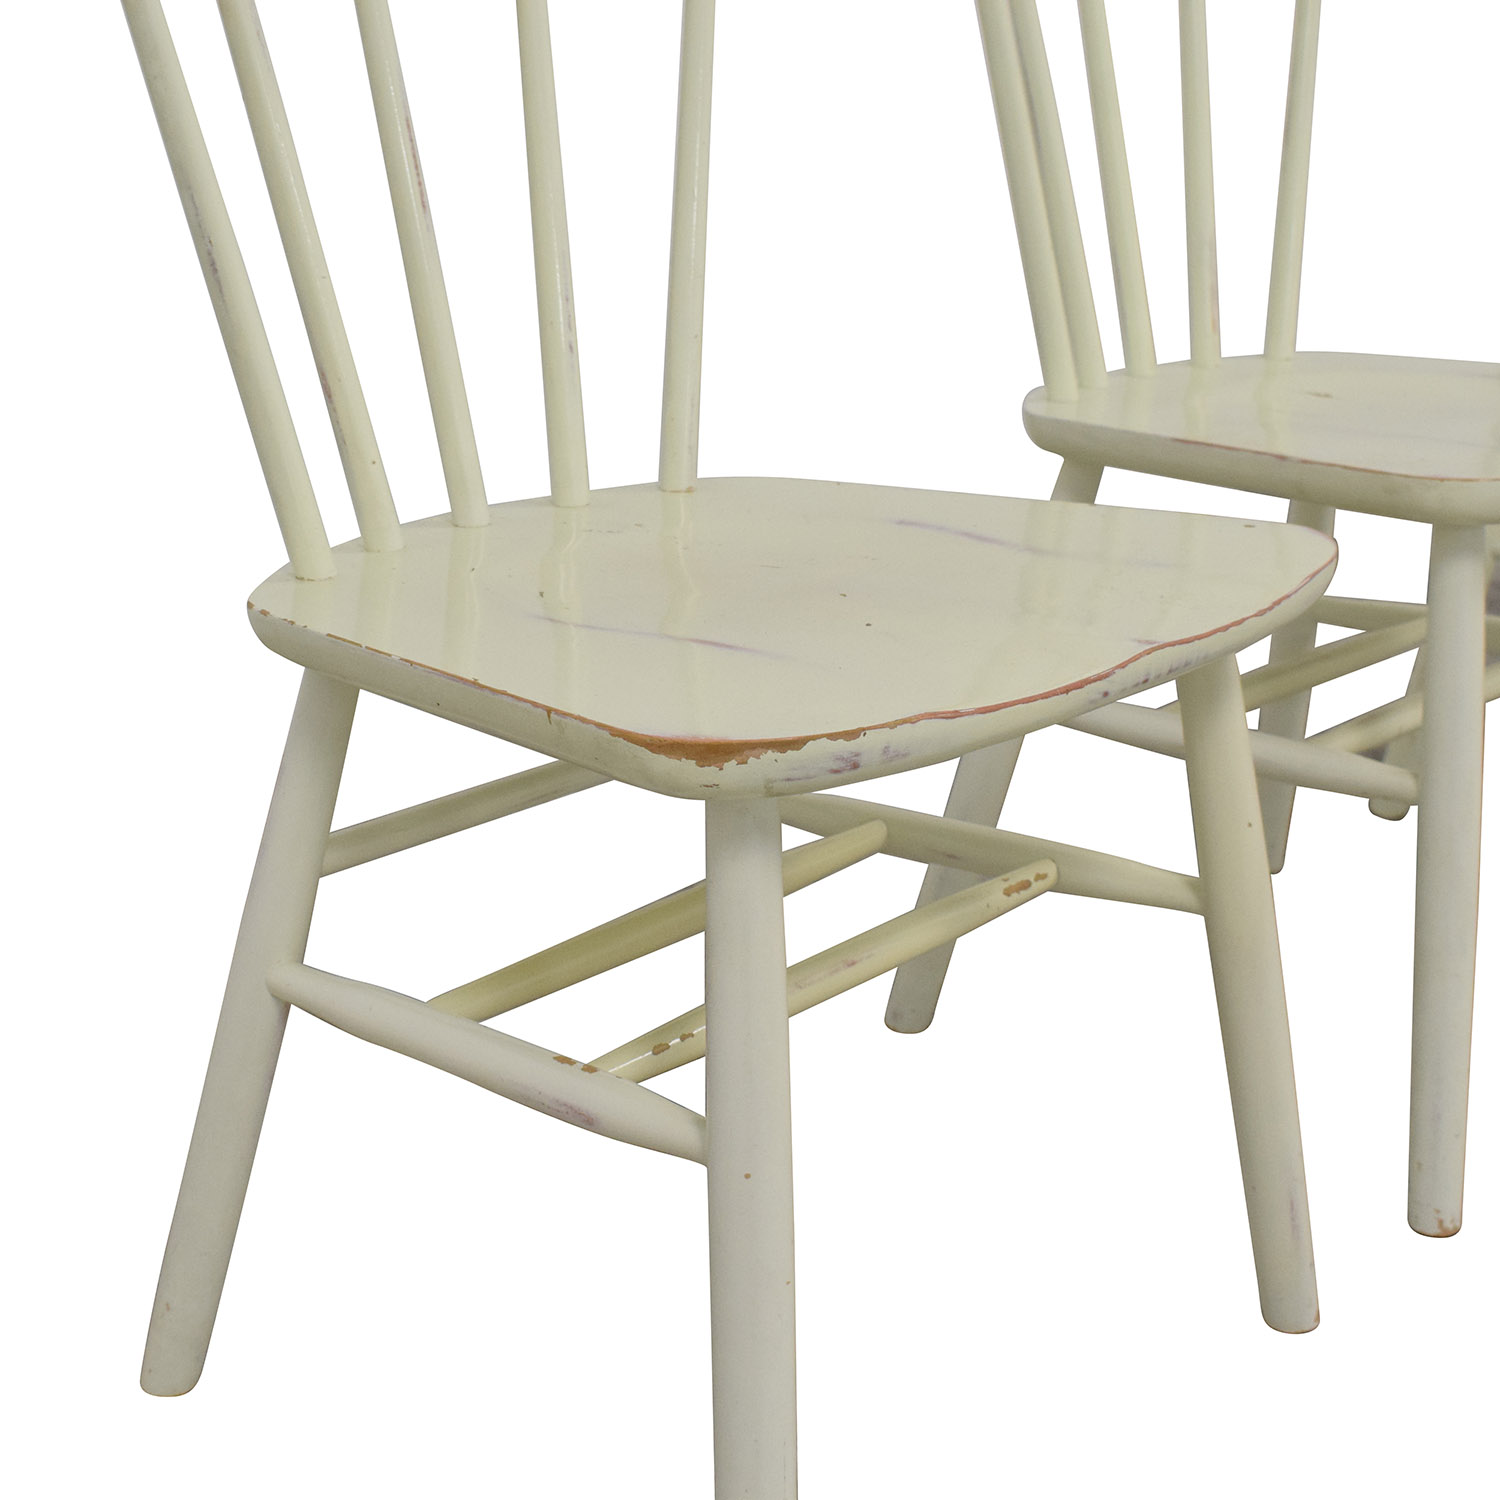 Pottery Barn Pottery Barn Rustic Dining Chairs dimensions